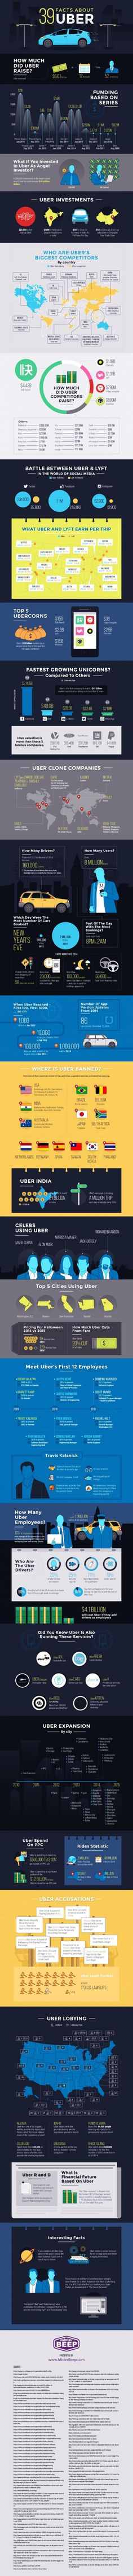 39 Facts About Uber - Business Infographic #travel #taxi #app